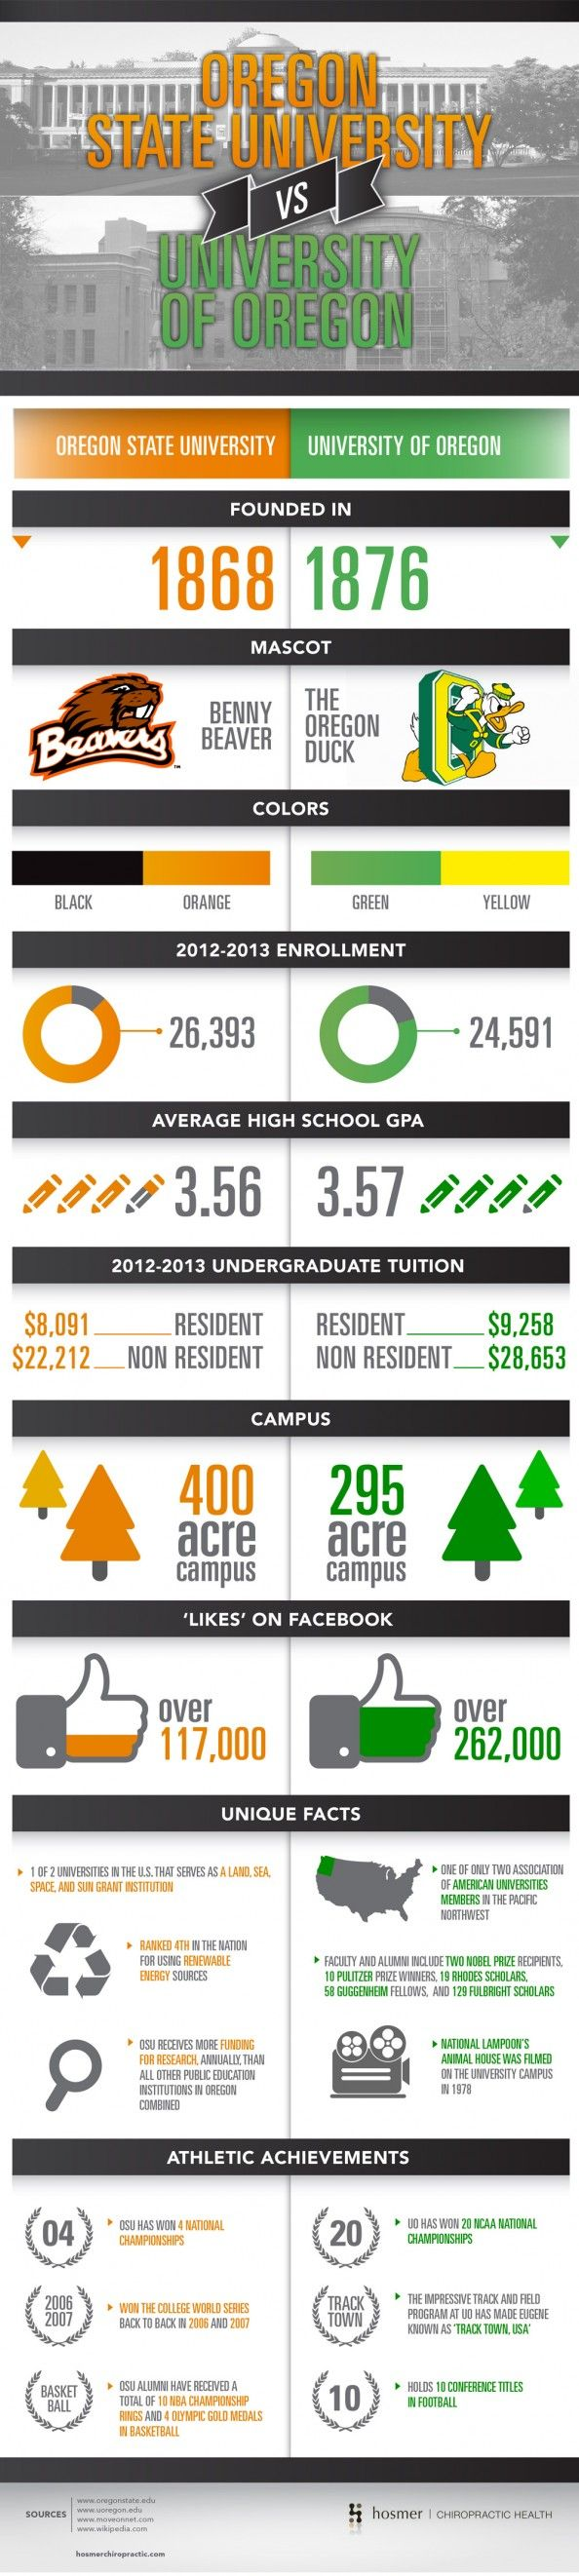 Oregon State University vs. University of Oregon  Infographic